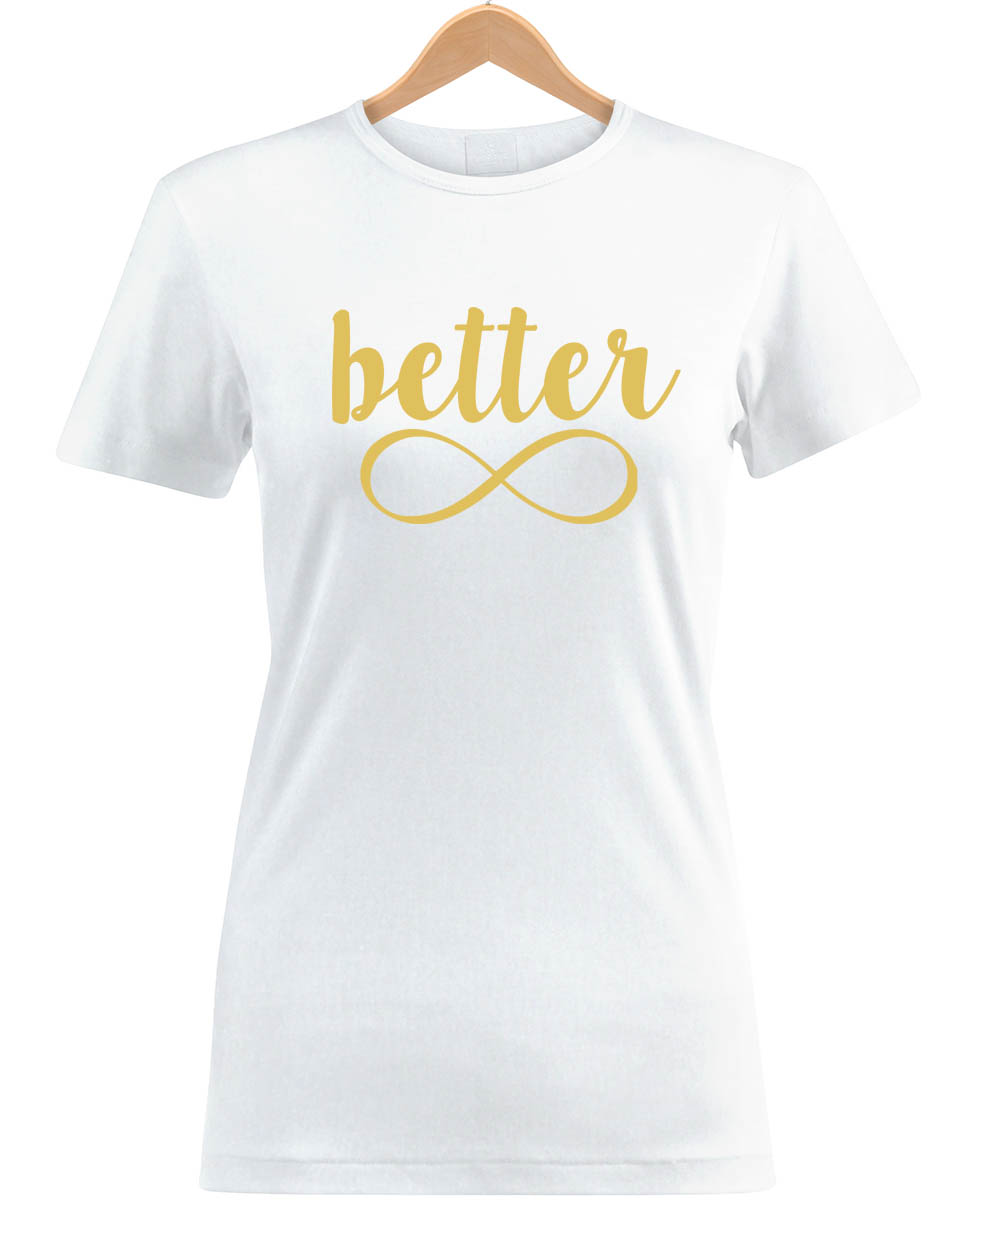 0ae7269cfe Together Better Páros Póló – Yourstore